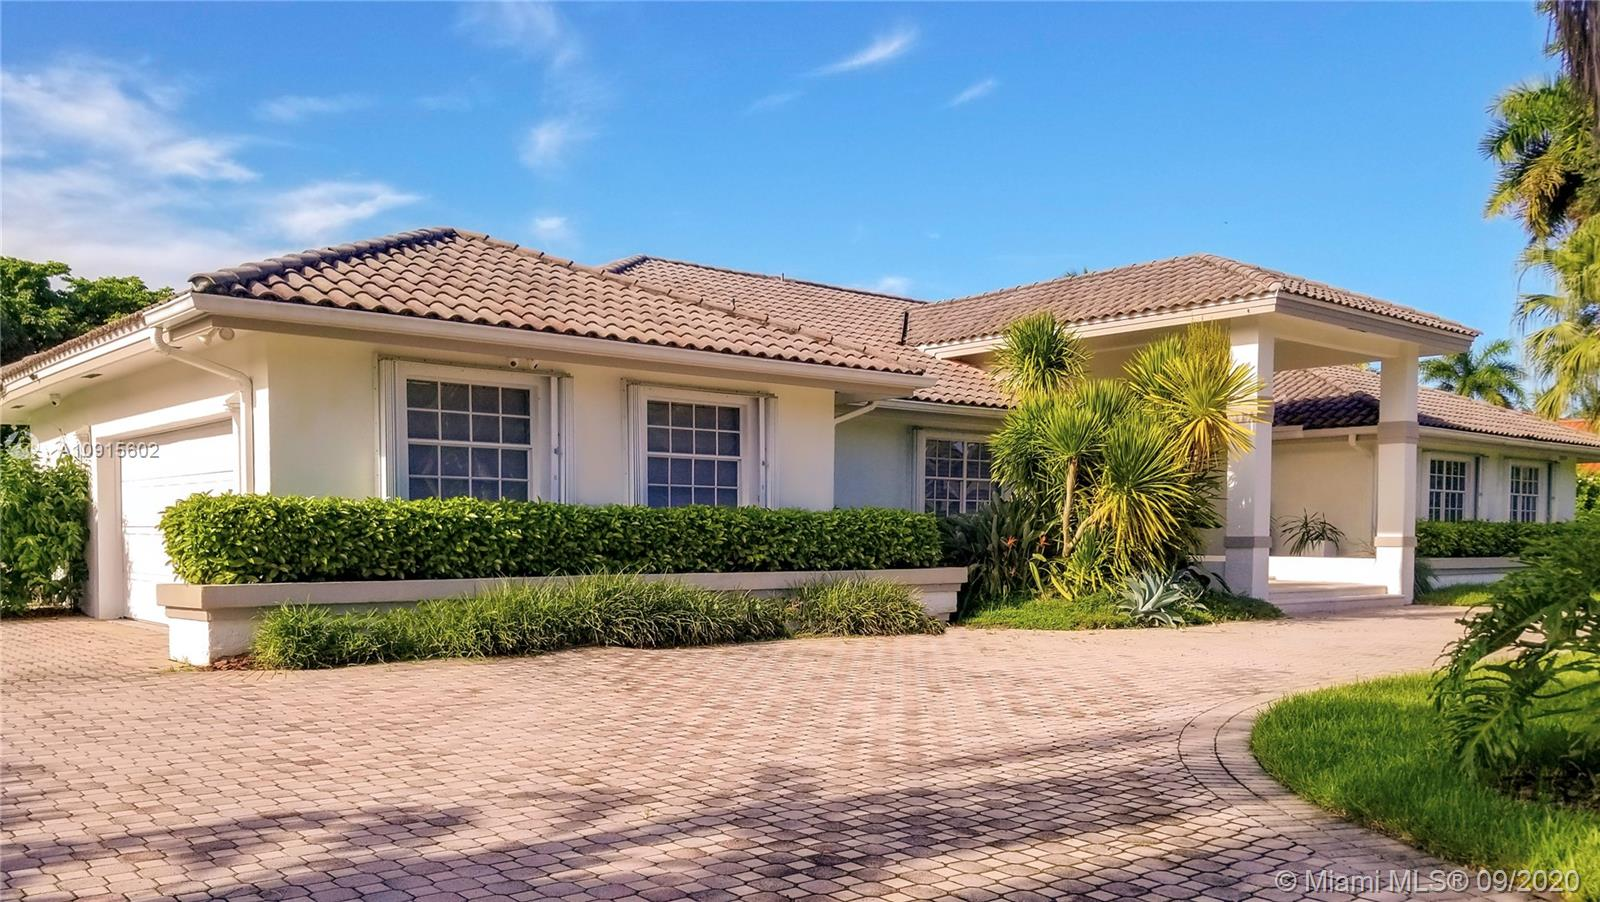 Details for 8625 113th Ter, Miami, FL 33156